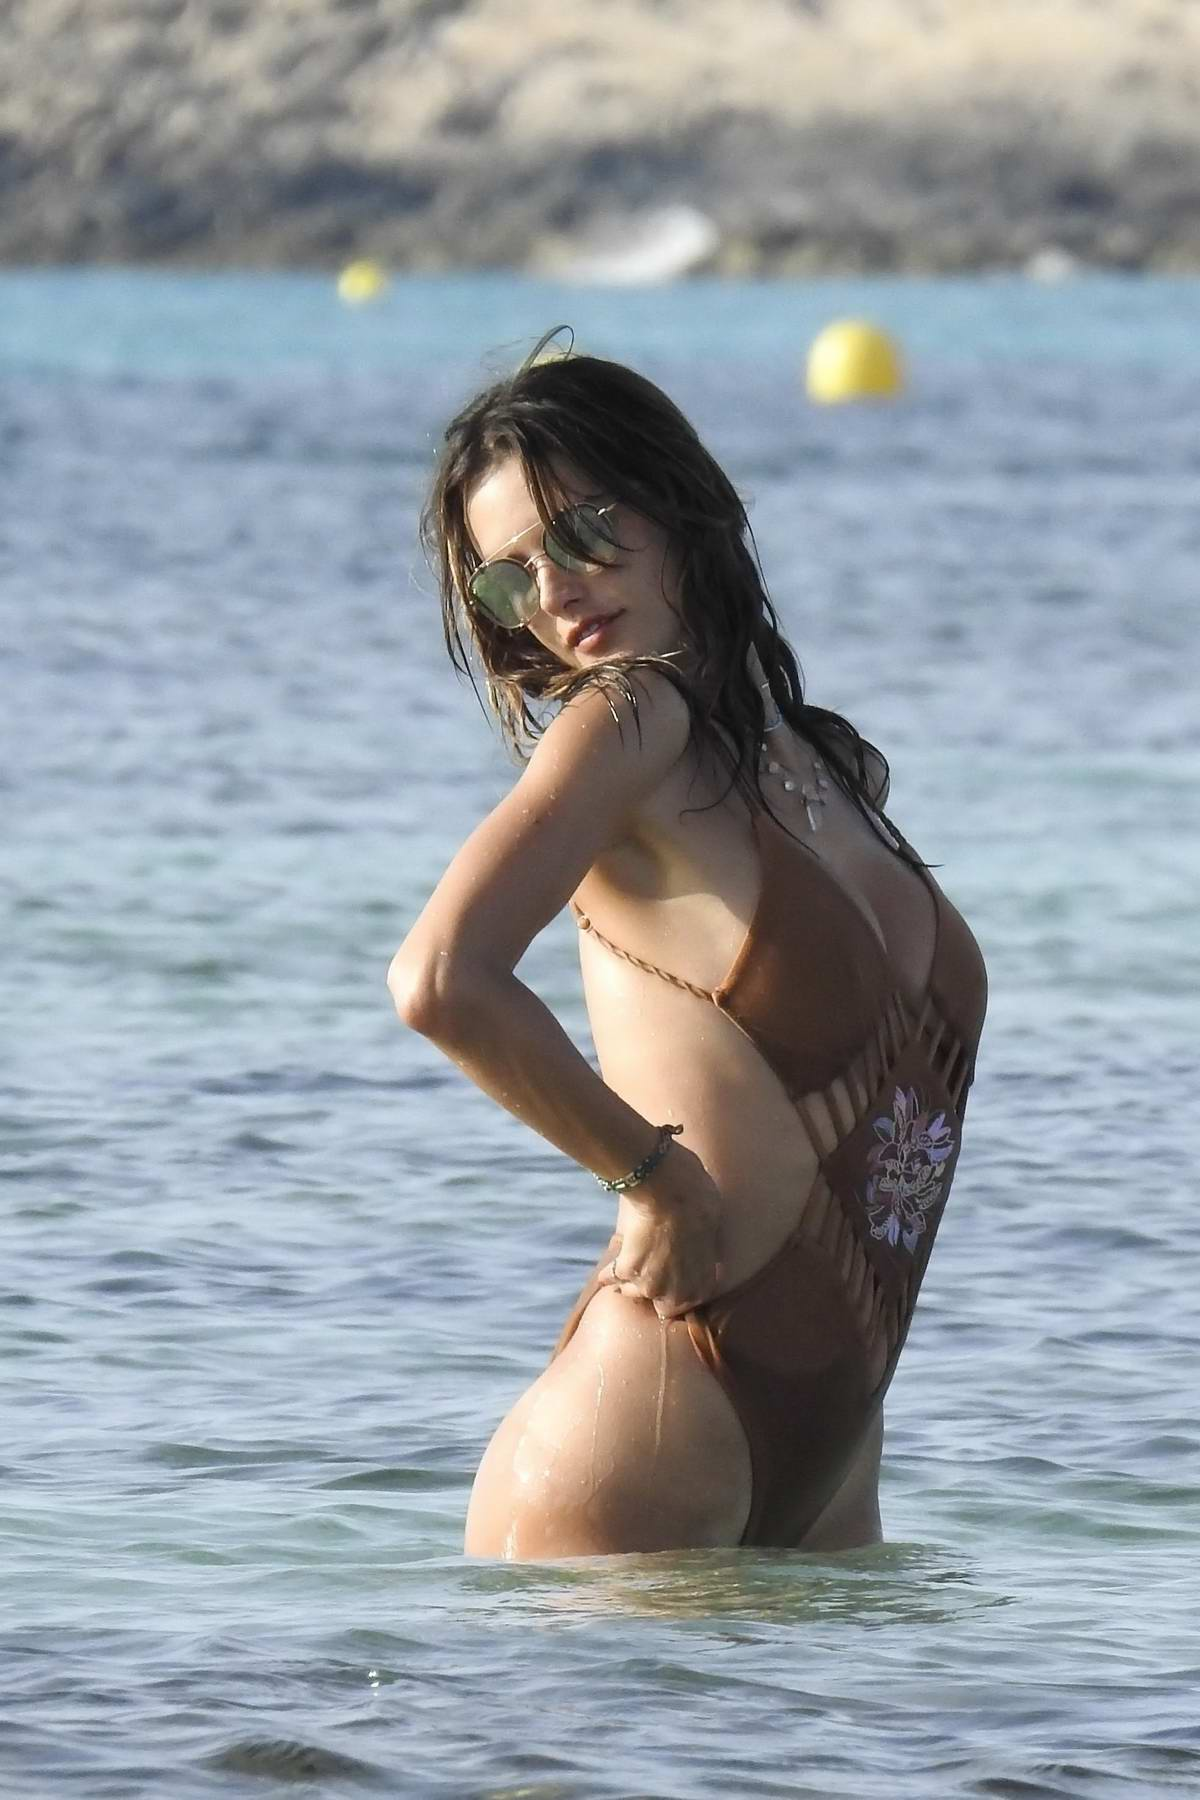 Alessandra Ambrosio in a Swimsuit enjoys the Ocean in Ibiza